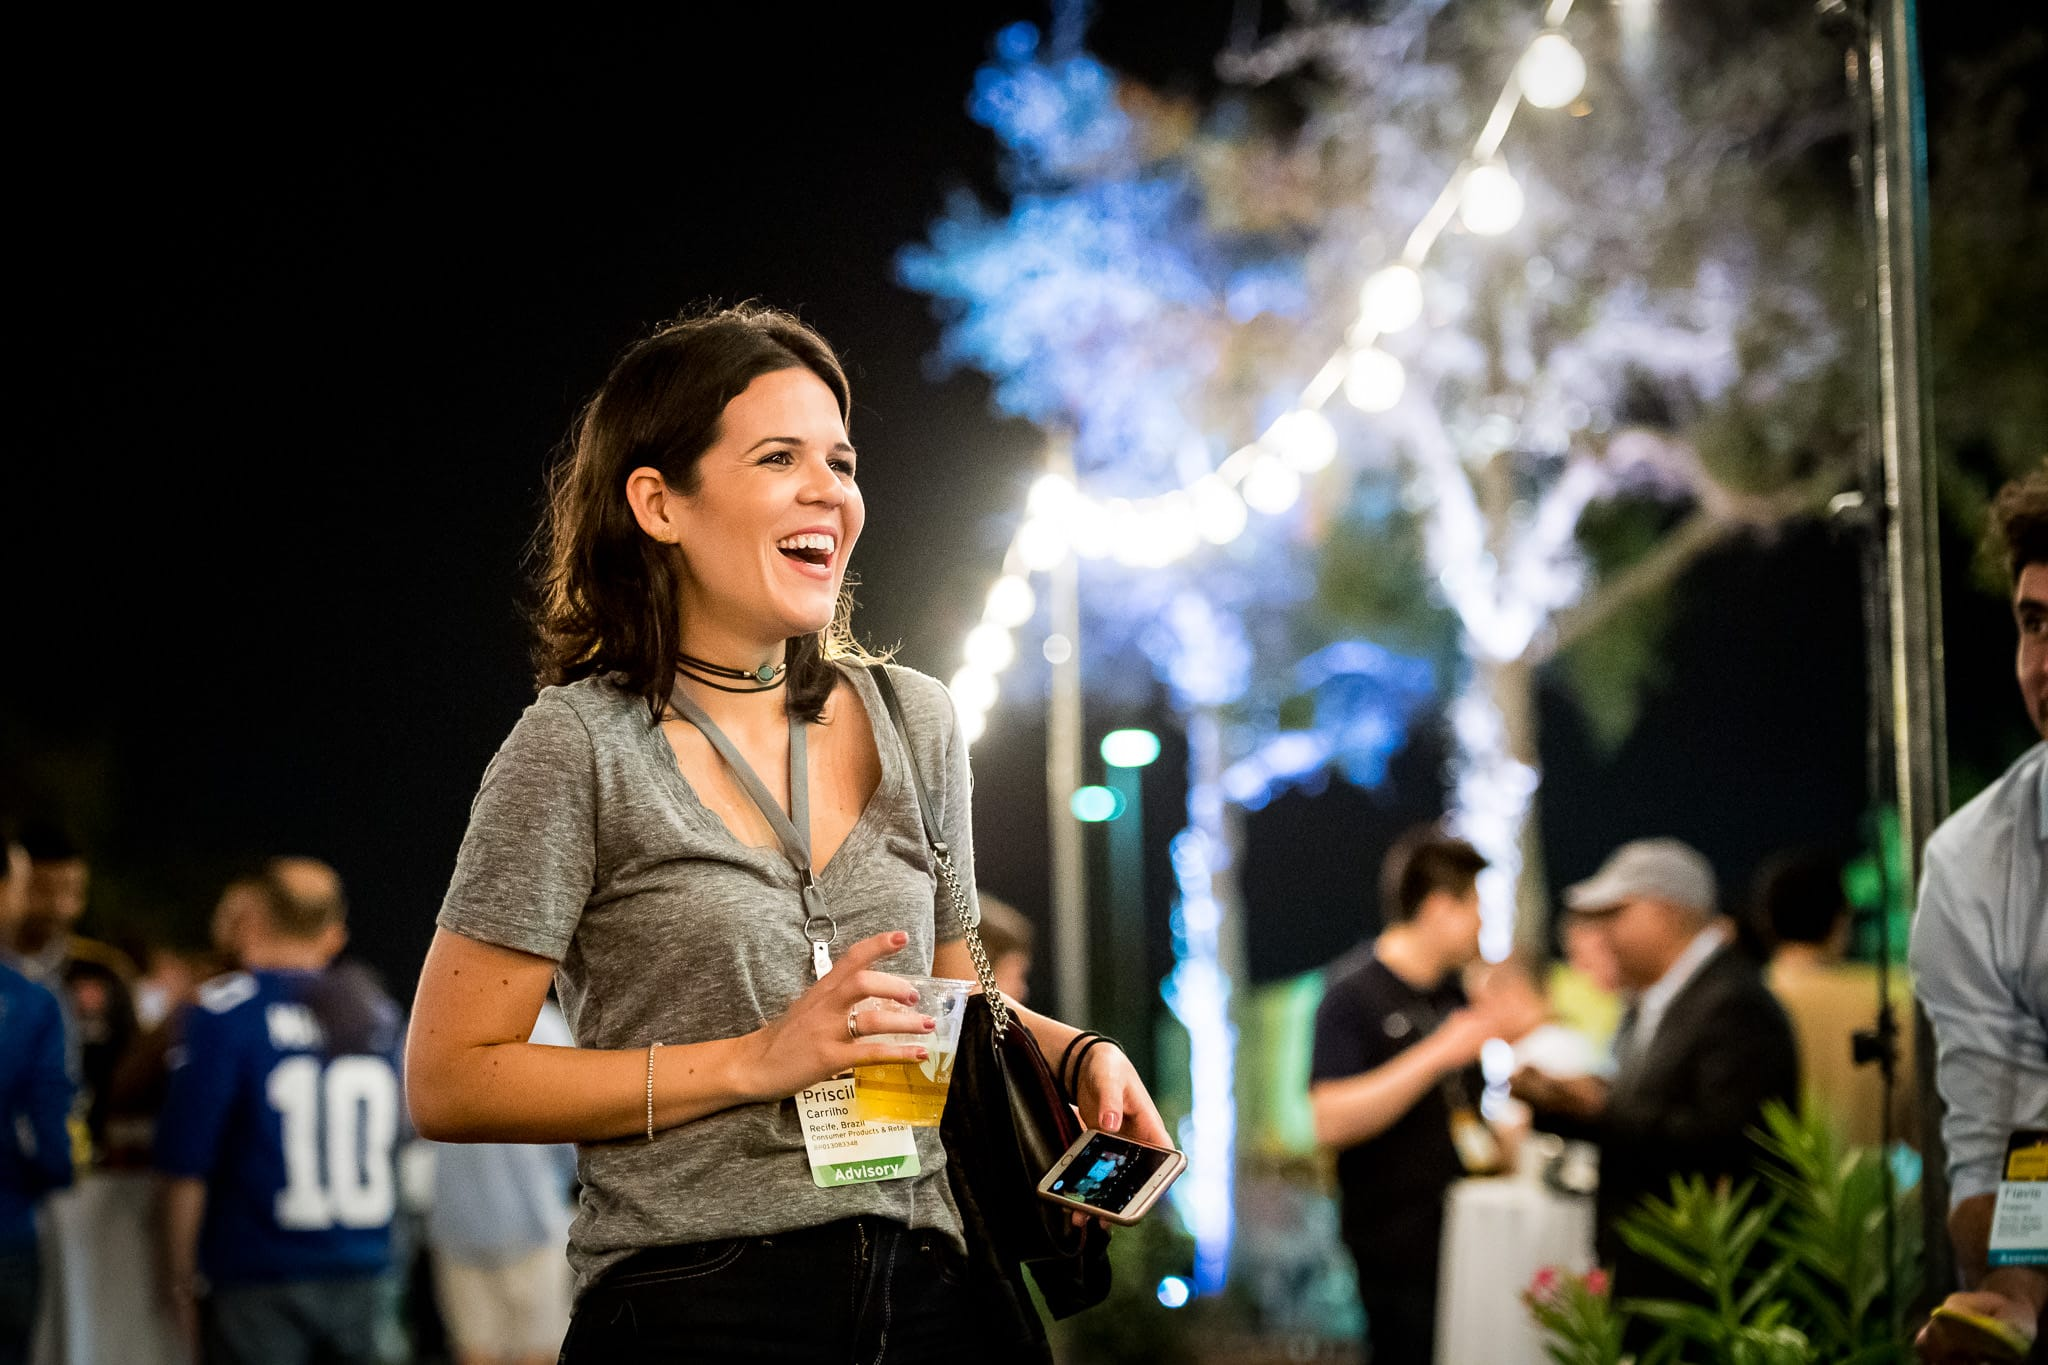 Female employee laughing with colorful lights in the background at EY's annual corporate event